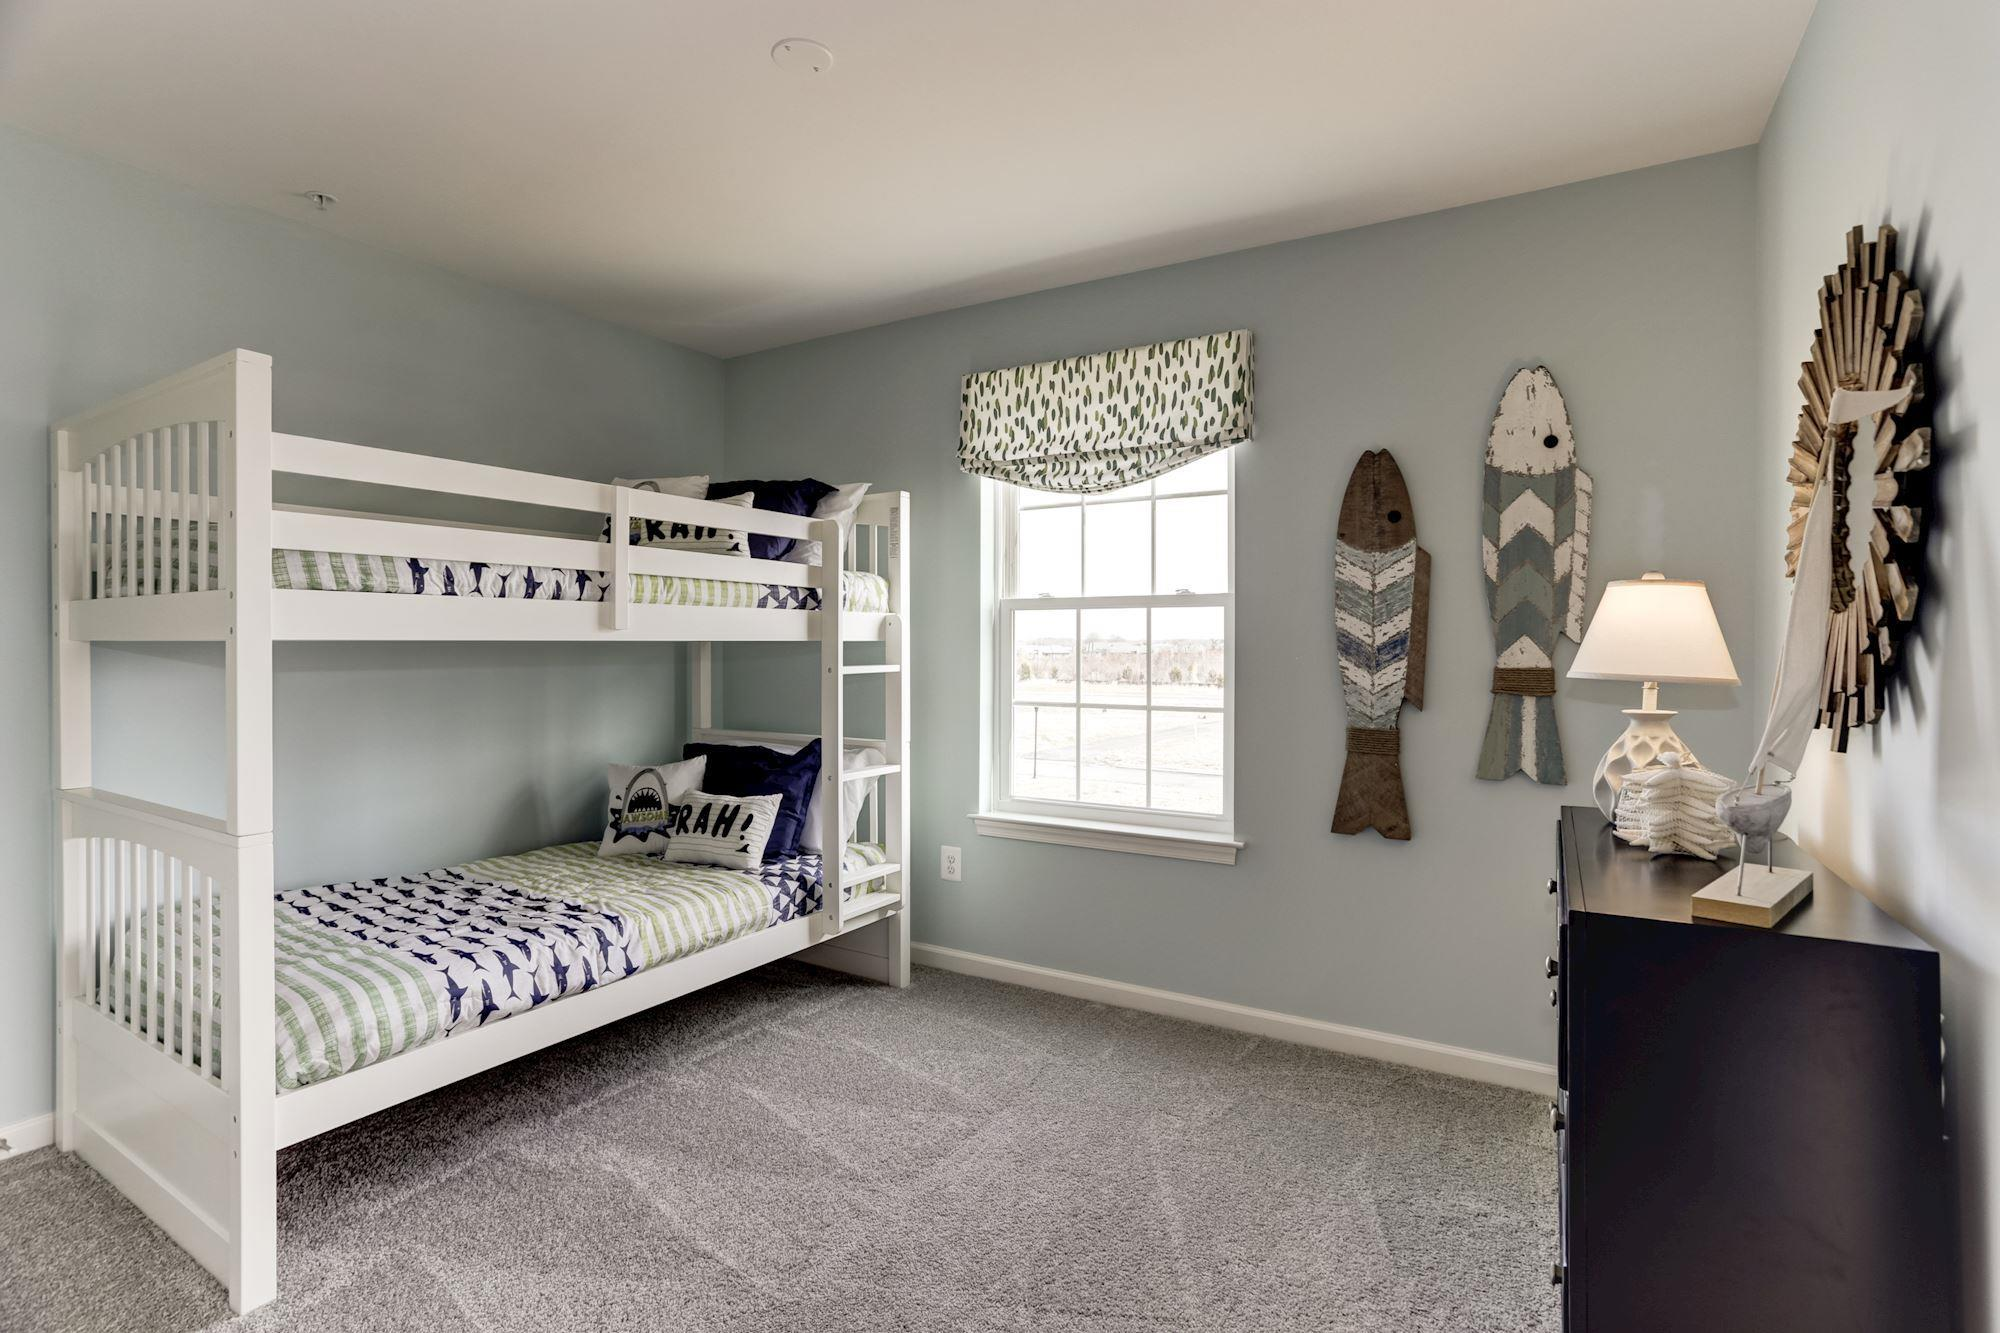 Bedroom featured in the Blair with English Basement By Baldwin Homes Inc. in Eastern Shore, MD